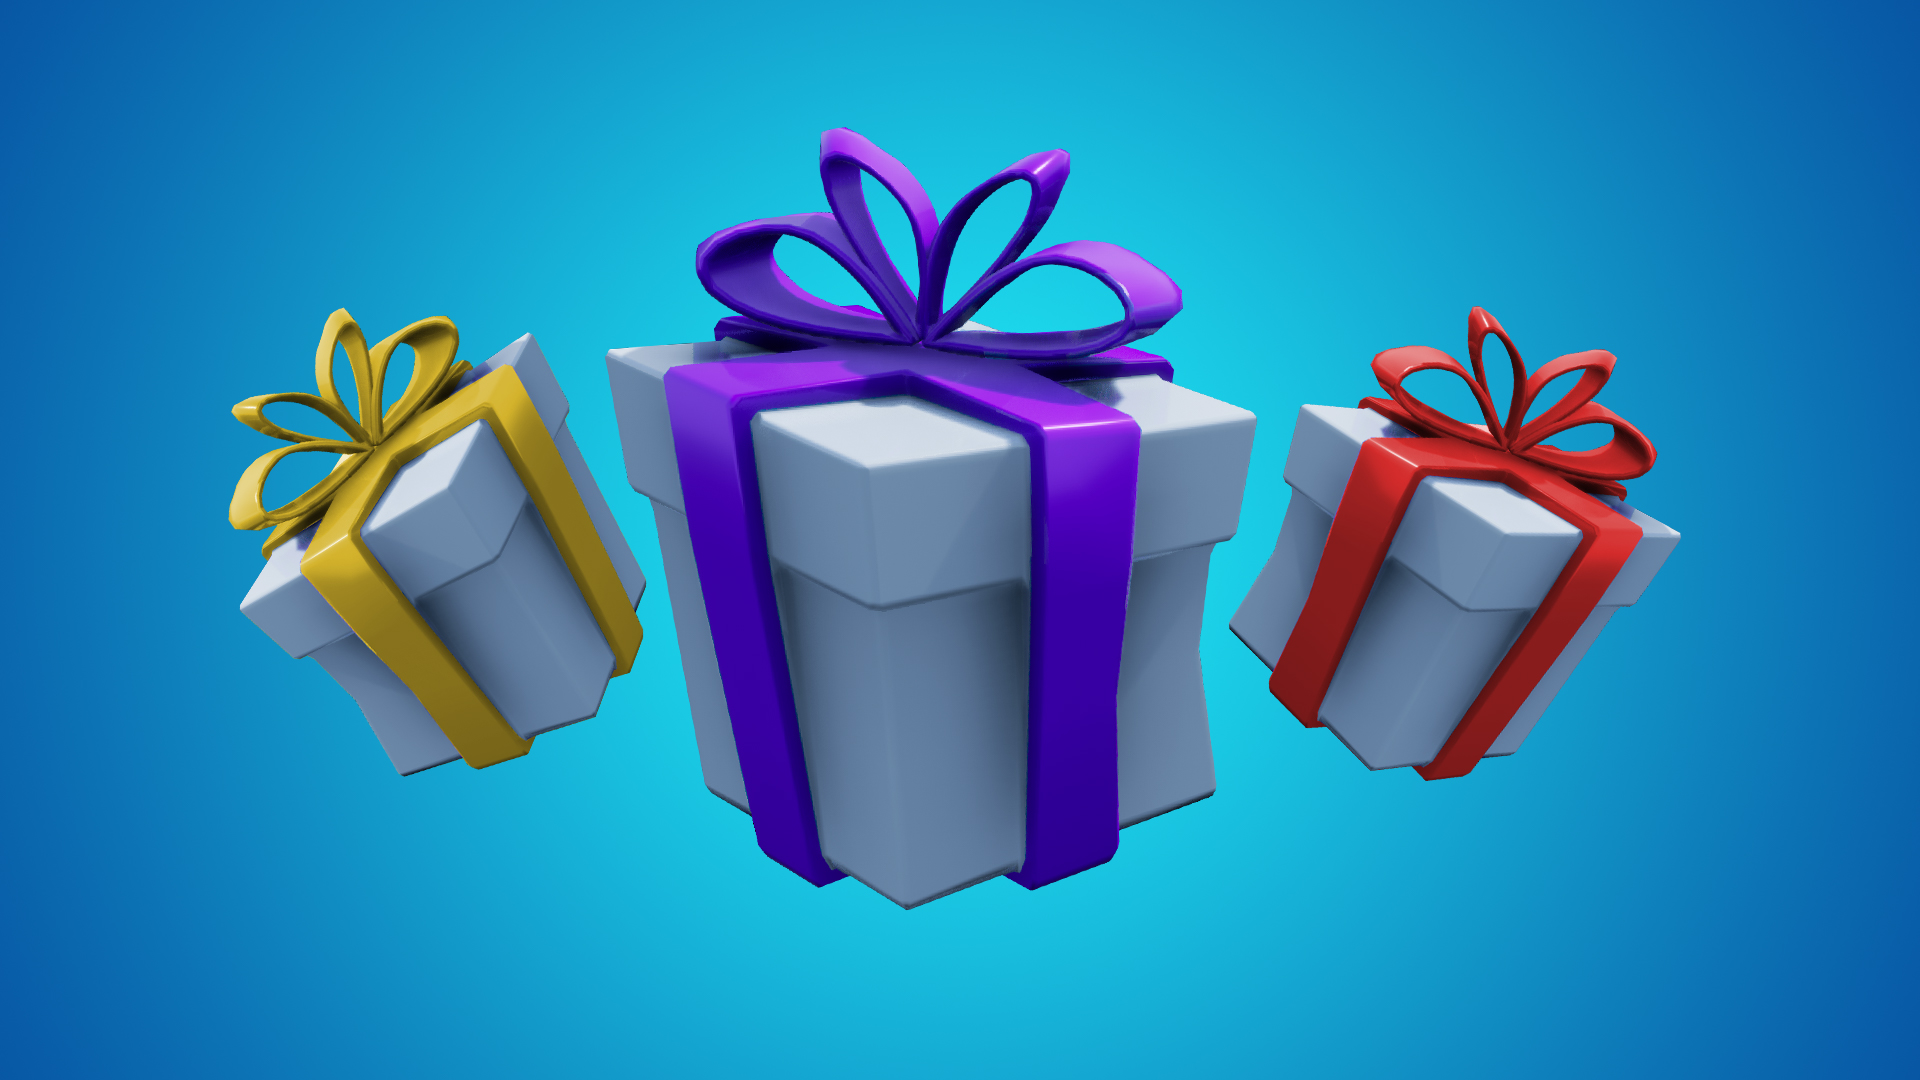 Fortnite Update Adds Gifting Battle Royale For